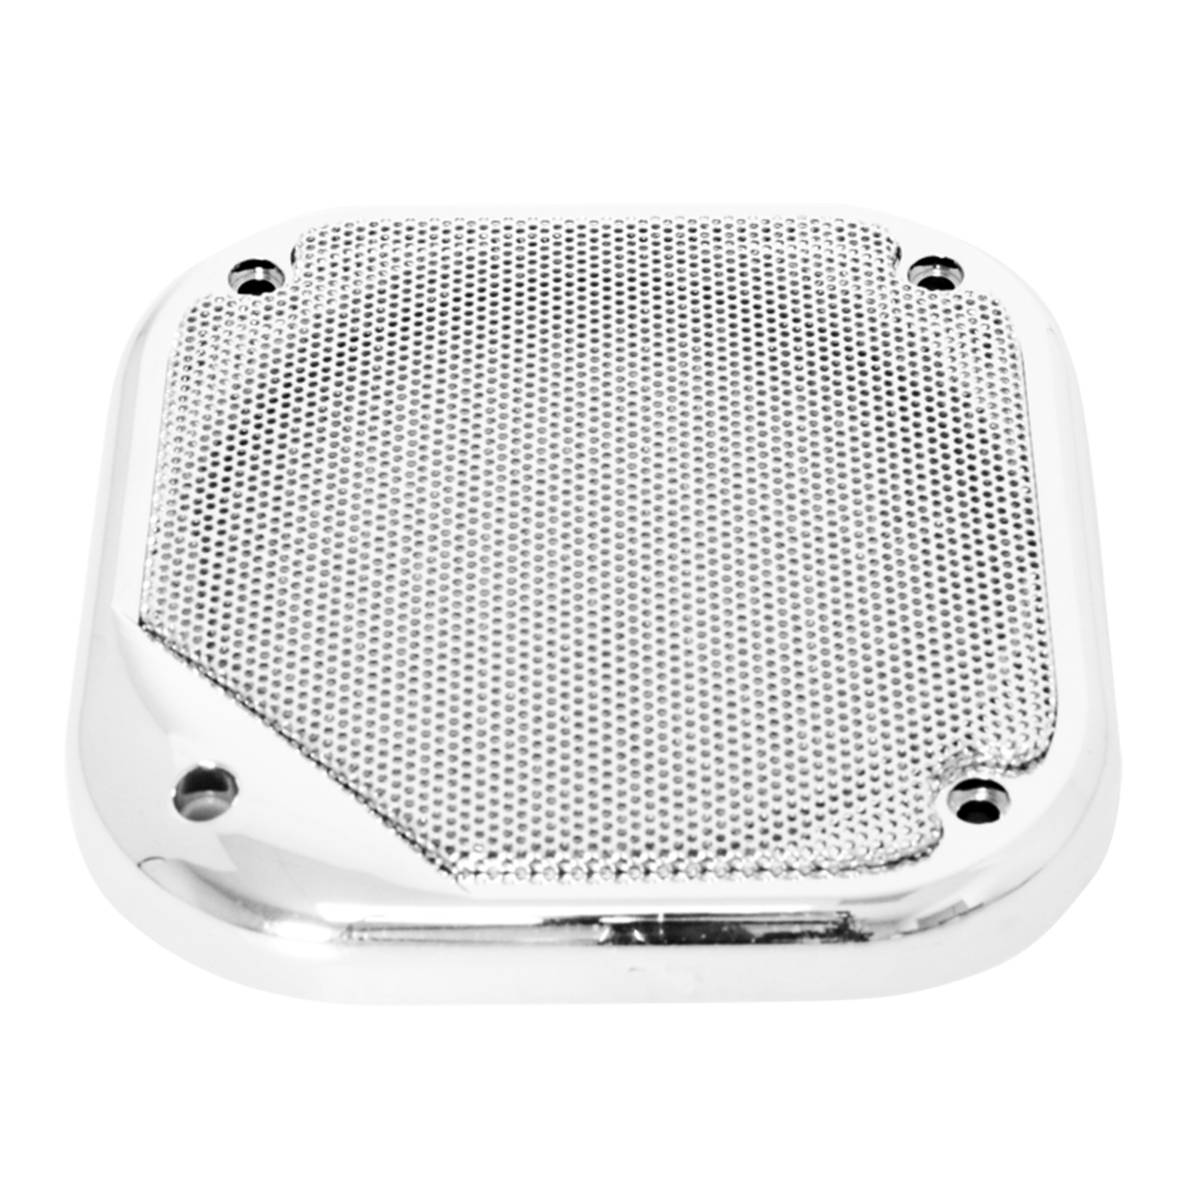 52026 Square Sleeper Speaker Cover for Kenworth